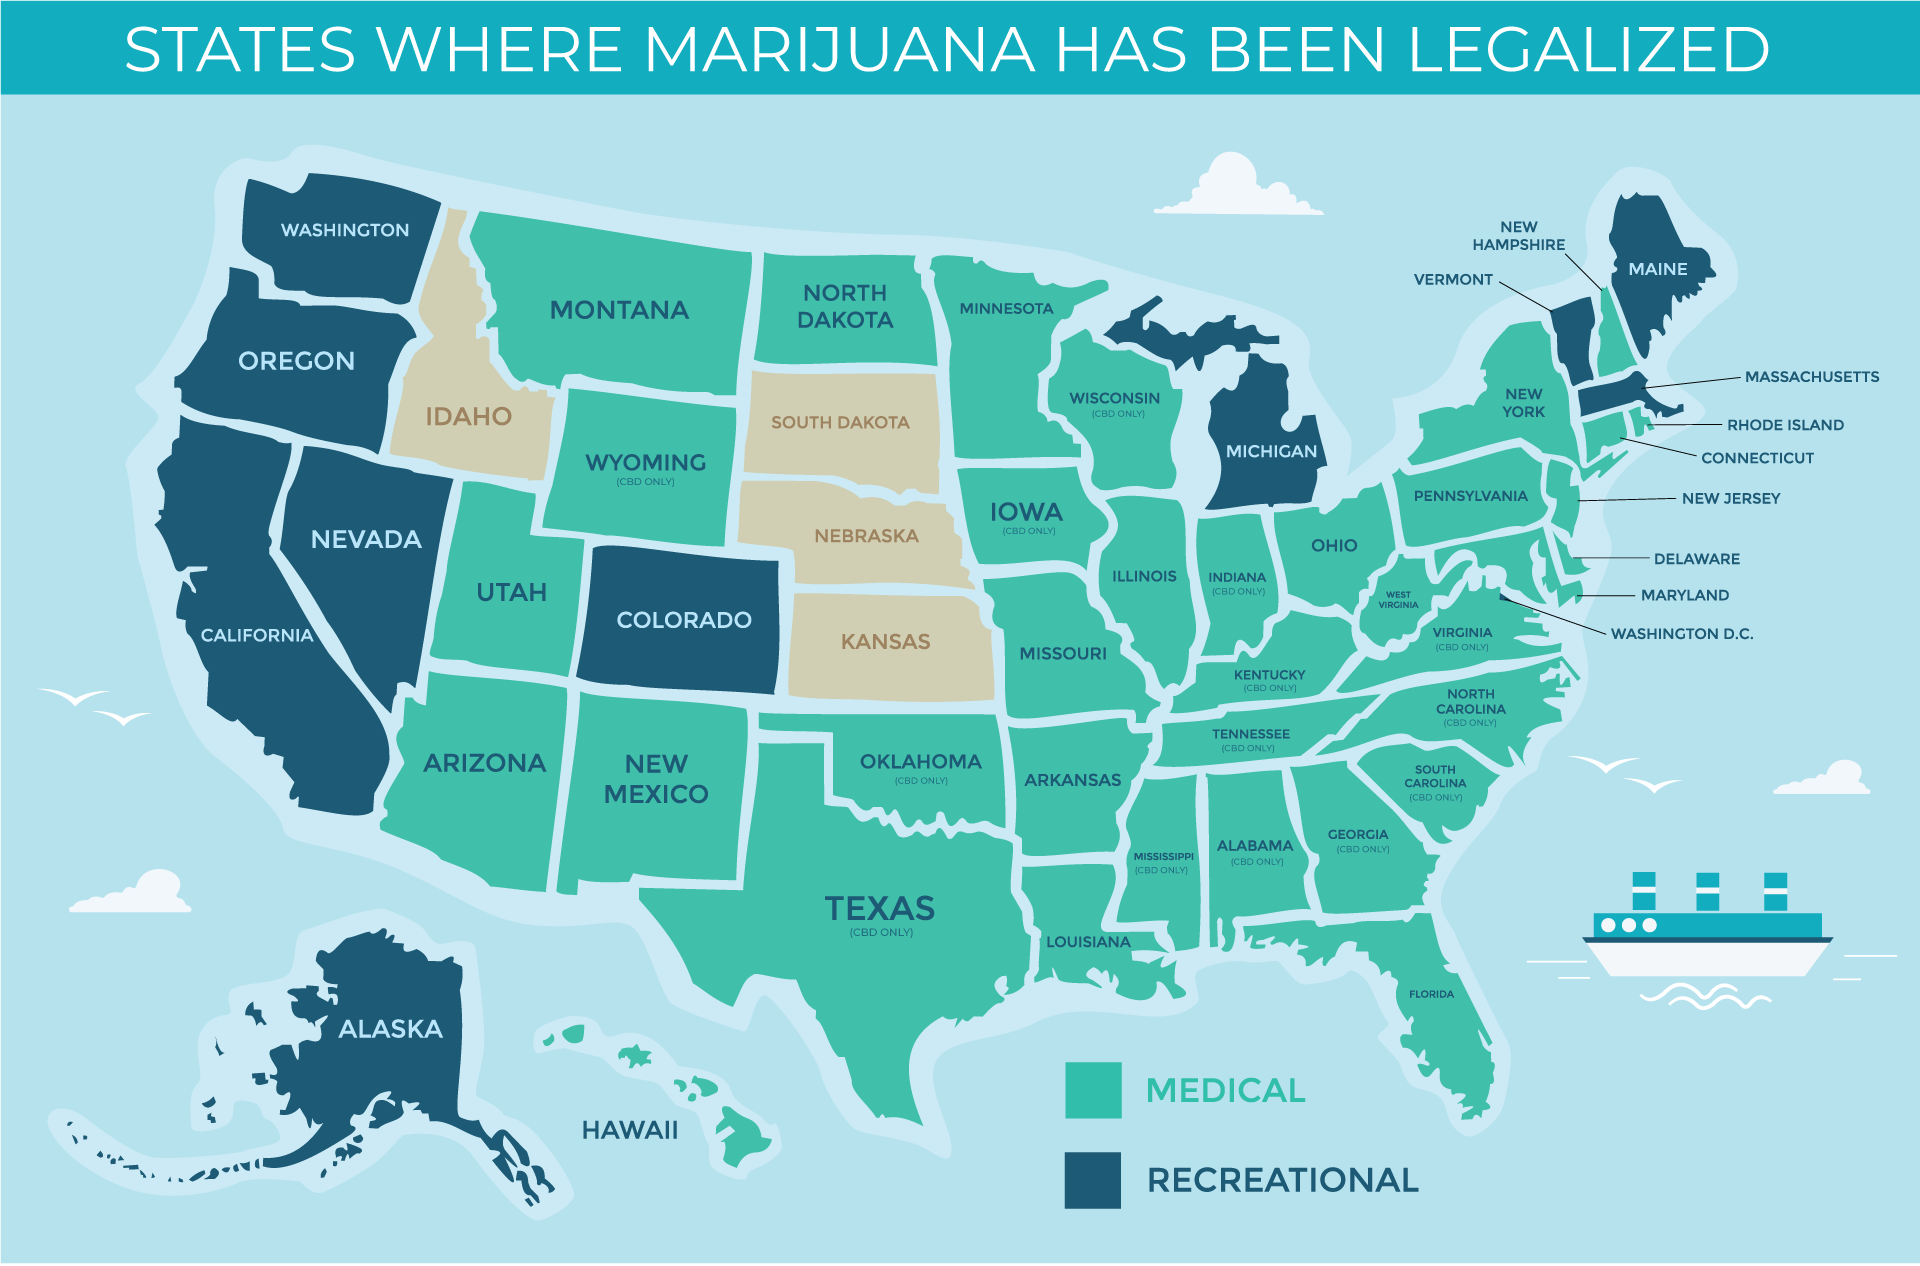 States that have legalized medical cannabis or recreational use